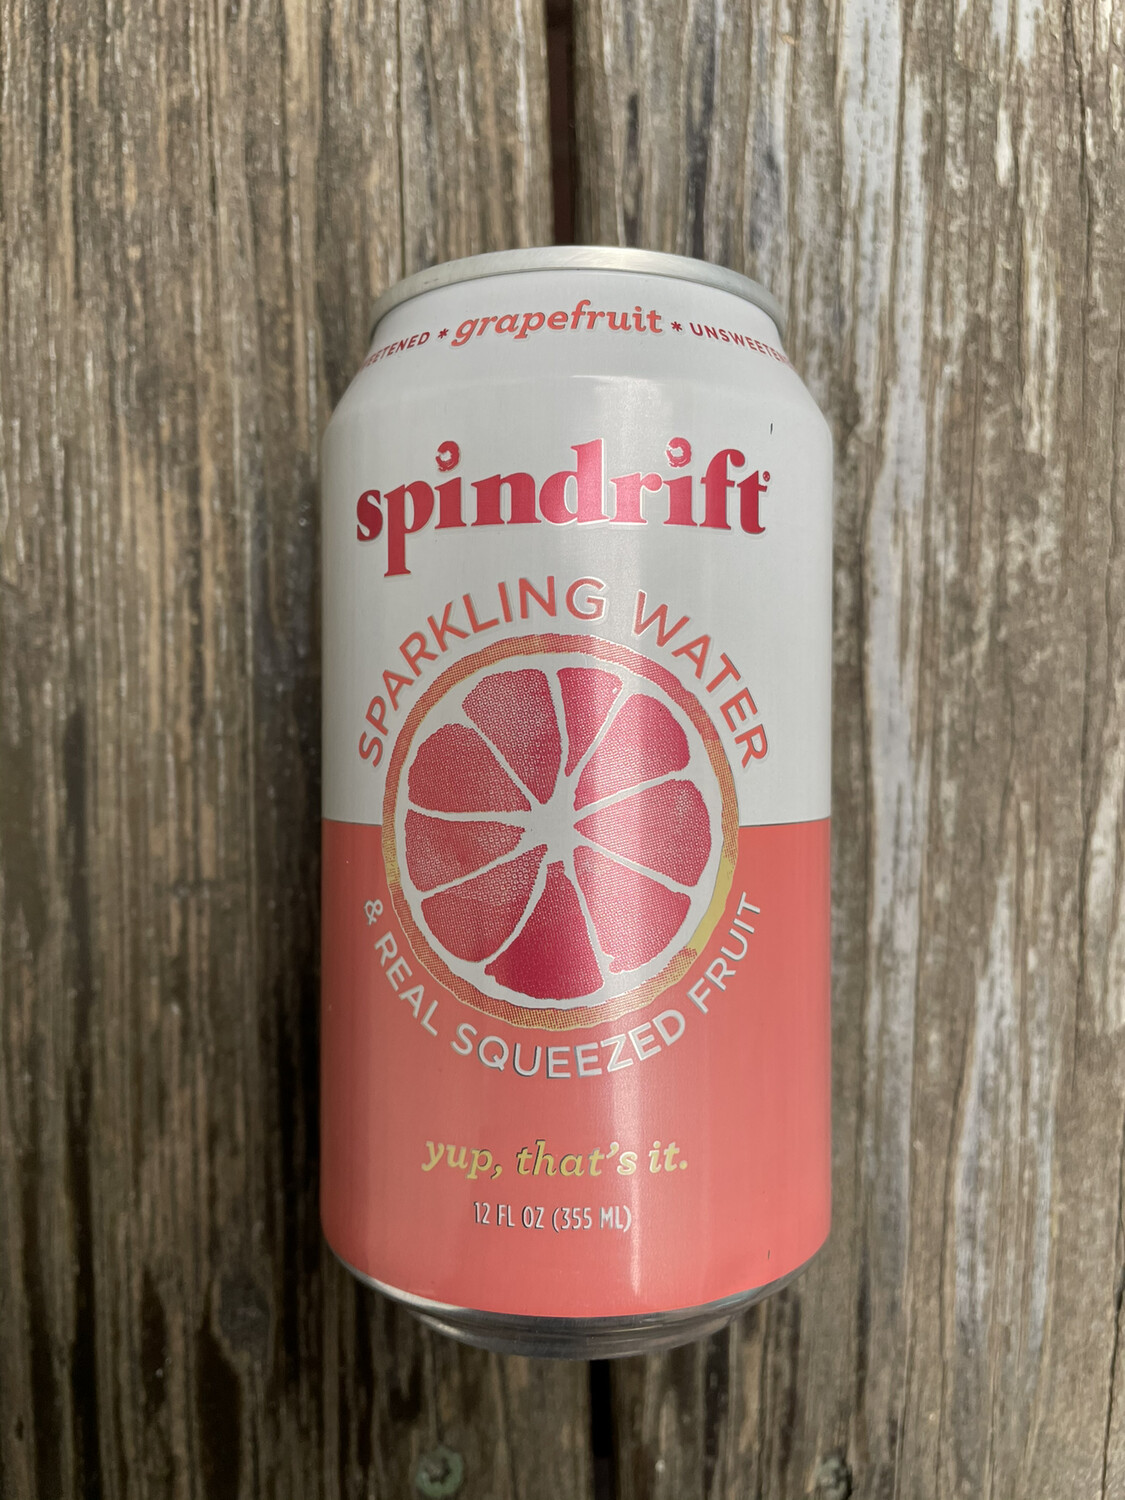 Spindrift Grapefruit